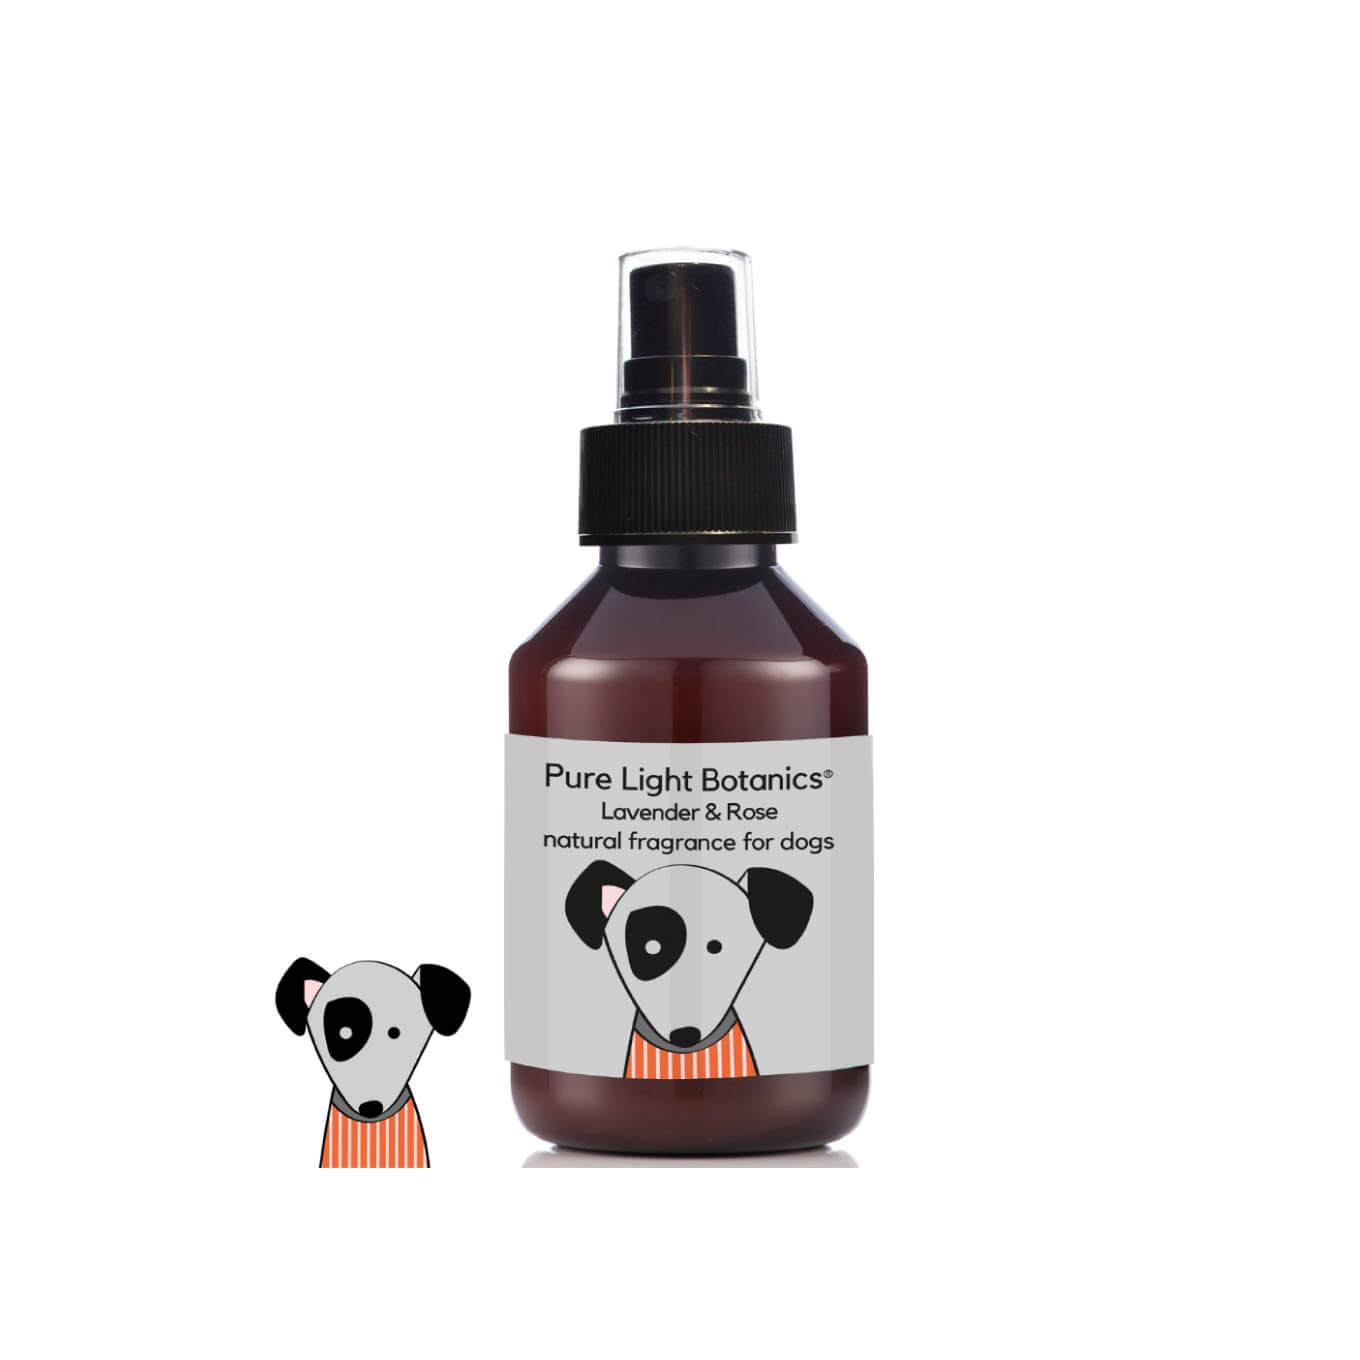 Pure Light Botanics Lavender & Rose Natural Fragrance for Dogs (100ml) - Dogs, Grooming Essentials, New, Pure Light Botanics - Shop Vanillapup - Online Pet Shop